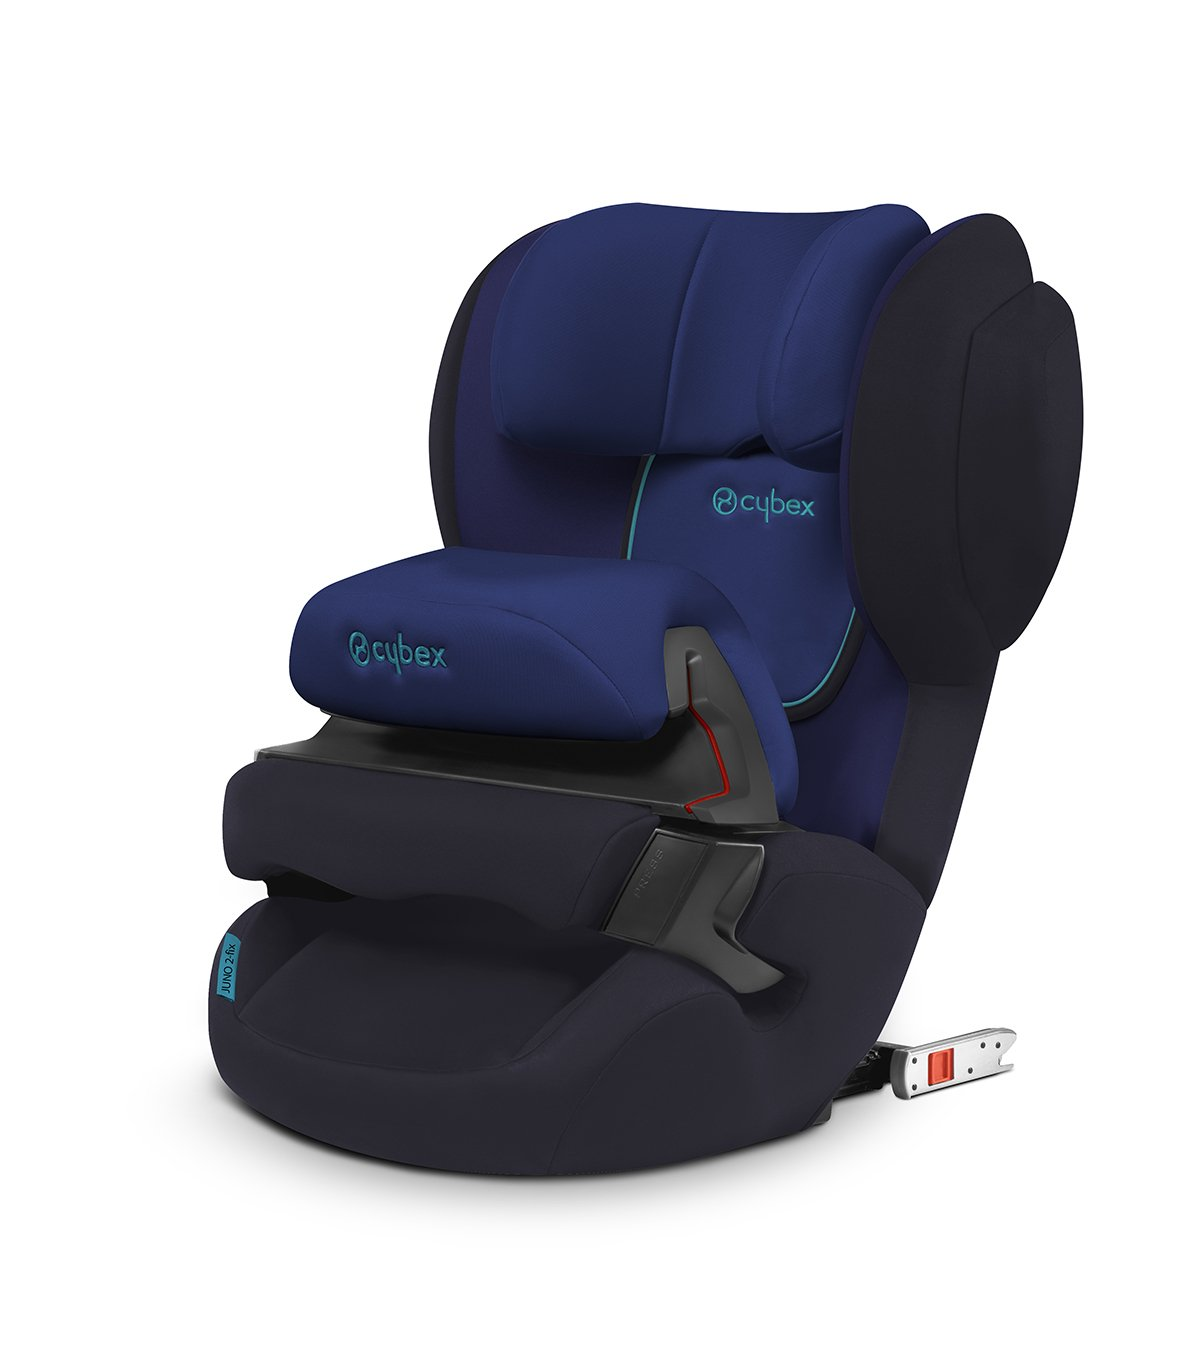 Cybex Silver Juno 2-Fix Child's Car Seat, for Cars with ISOFIX, Car Seat Group 1 (9-18 kg), Blue Moon Cybex Gr. 1, 9 - 18 kg, from approx. 9 months up to 4 years Test winner in the european child car seat test 11/2013 Adjustable impact shield 1